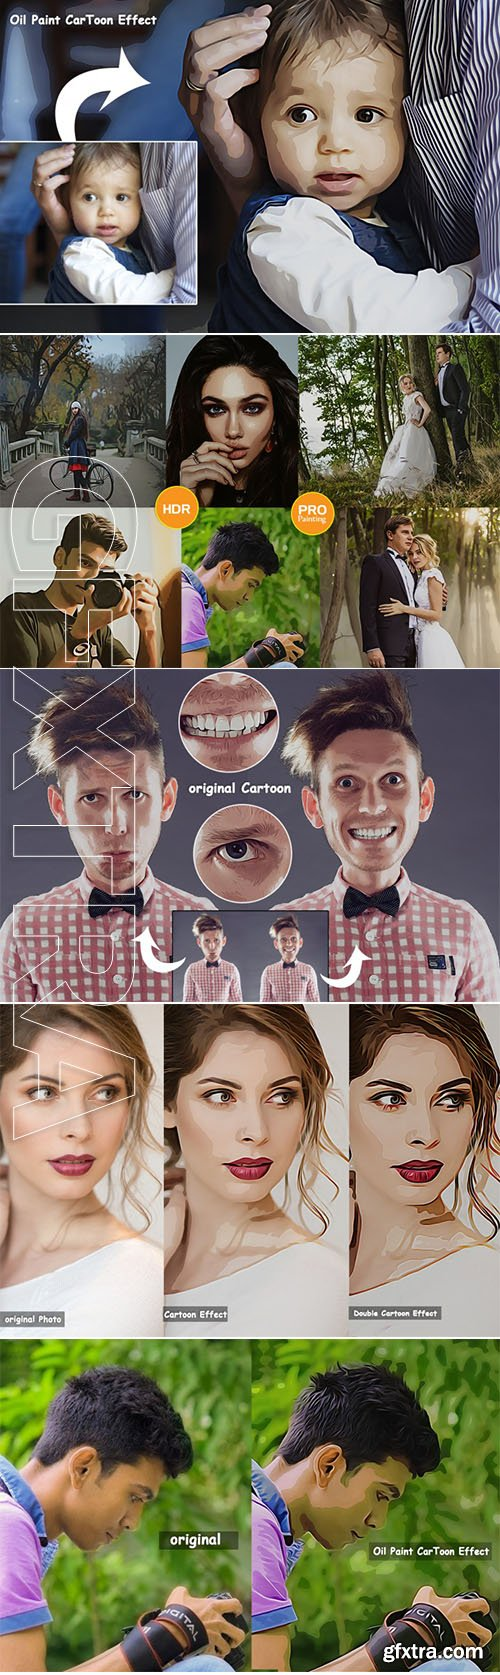 Graphicriver - Pro Oil Cartoon Photo Action v.2